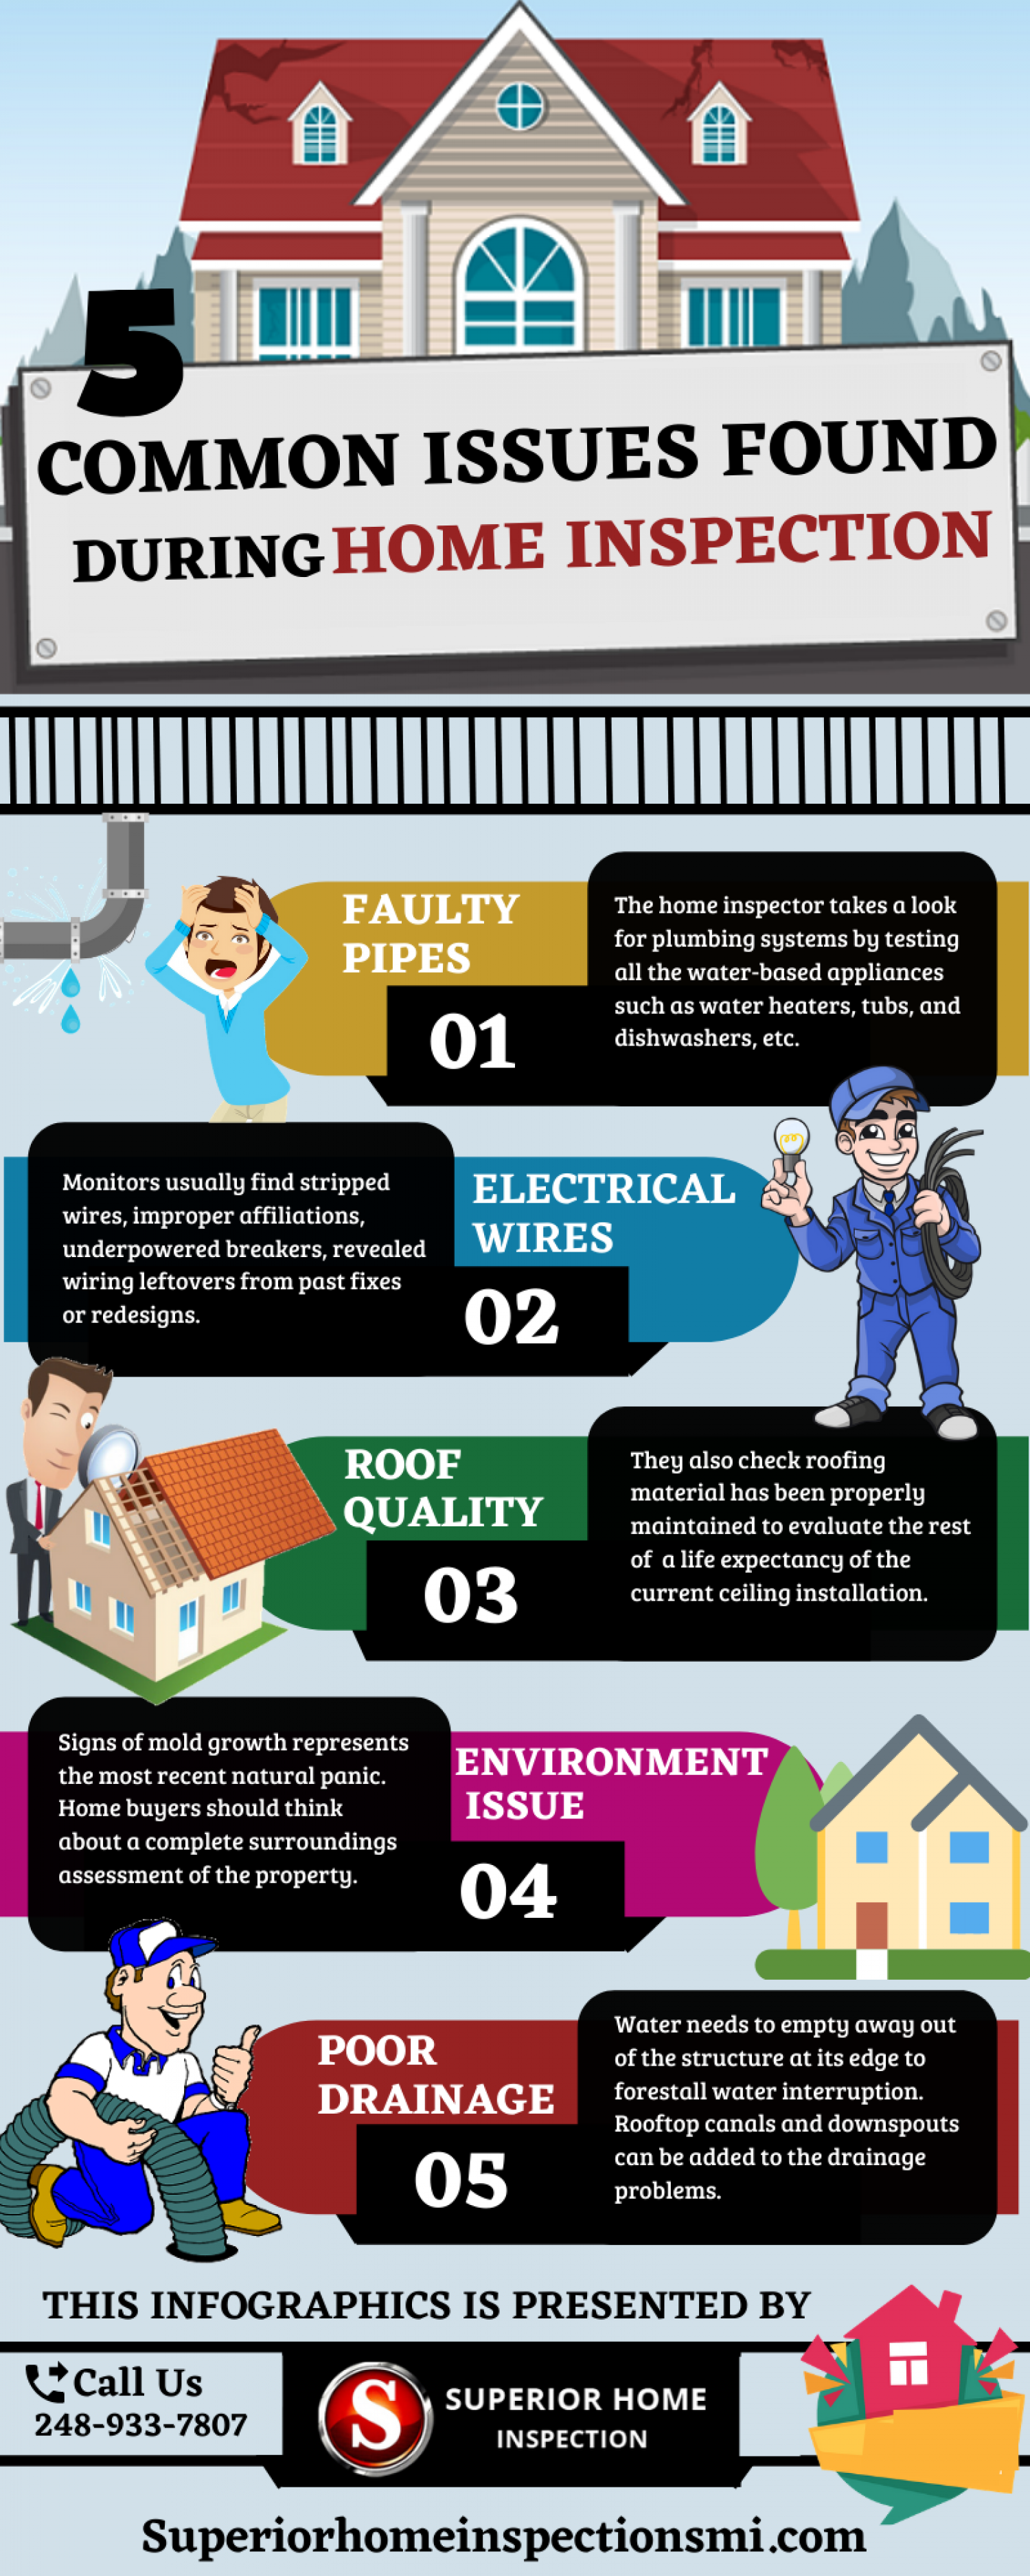 Get a Full Home Inspection Services Infographic